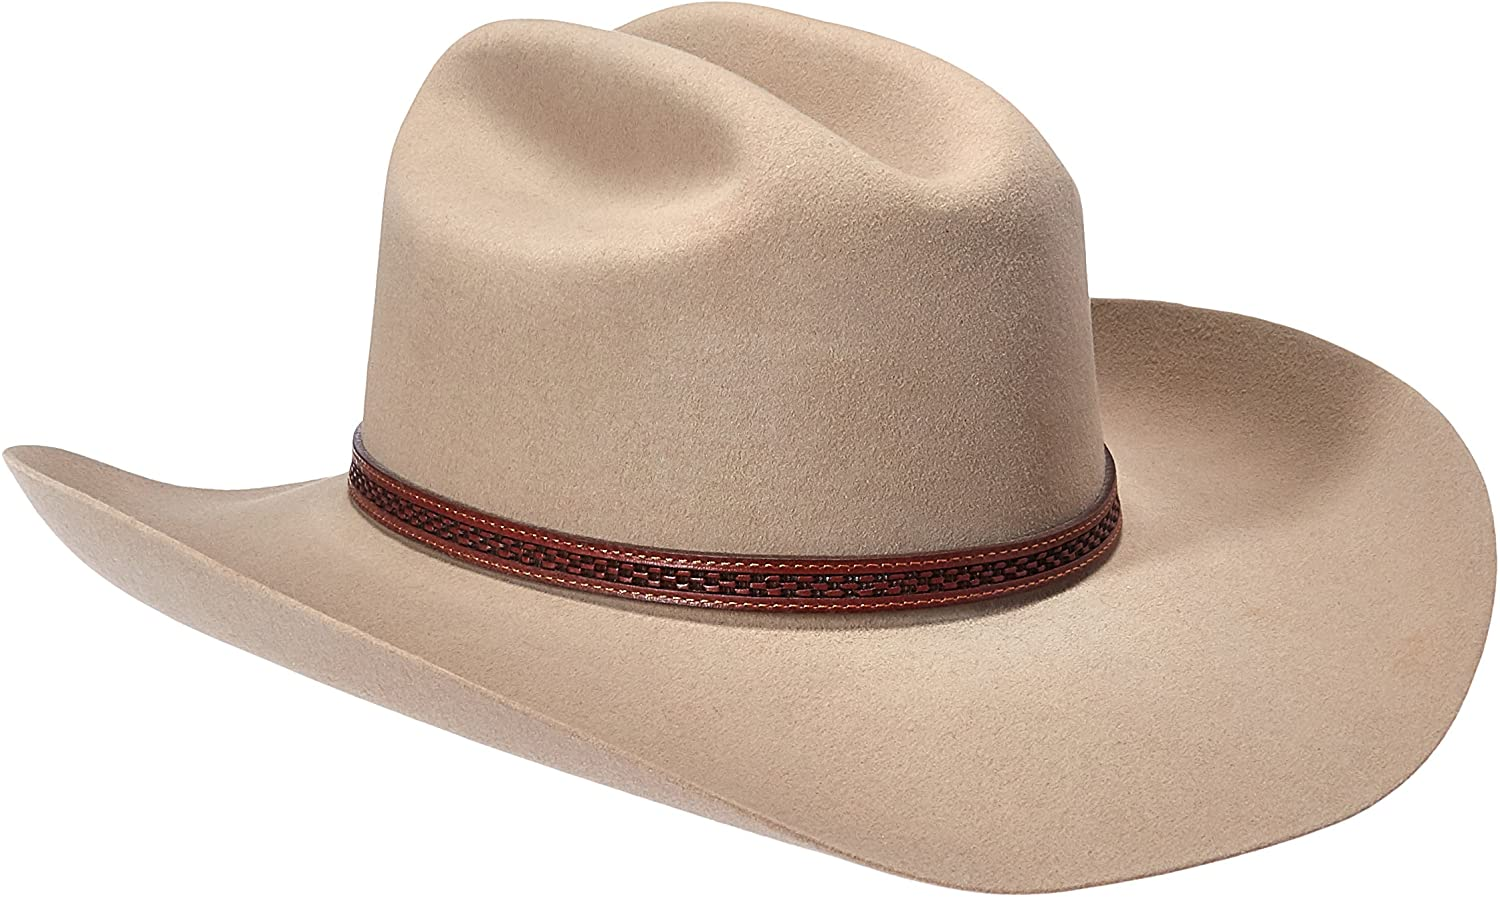 Stetson Marshsll 4-X Sales of SALE items from new works Cowboy Popular shop is the lowest price challenge Wool Hat